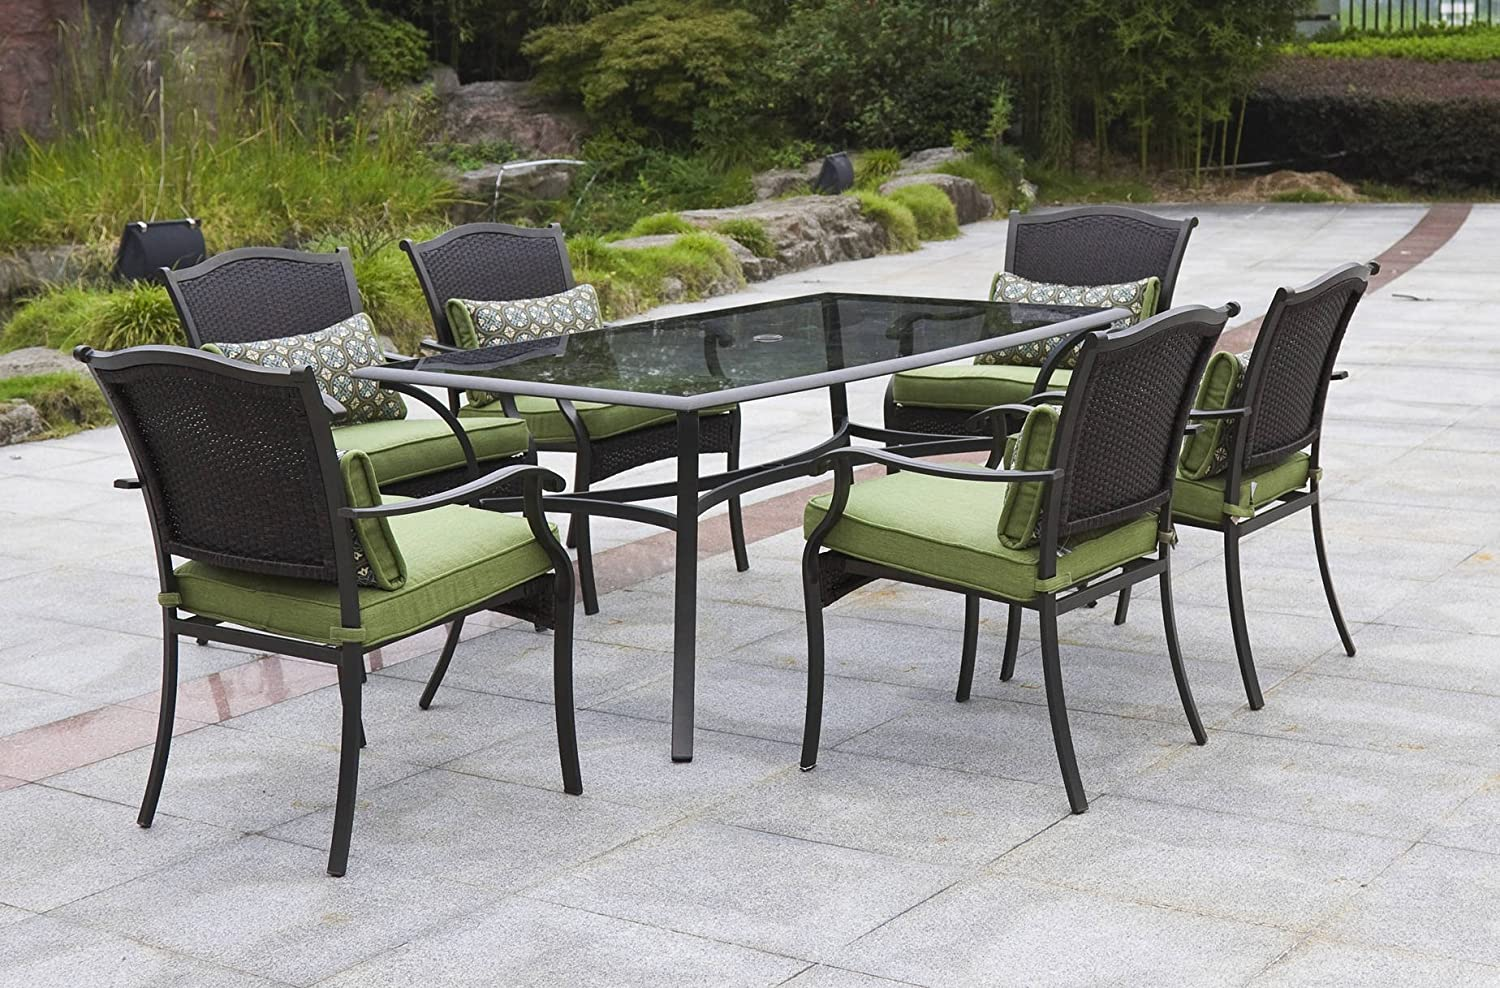 garden outdoor sand dining textured amazon dp com woodbury patio with set piece cushions